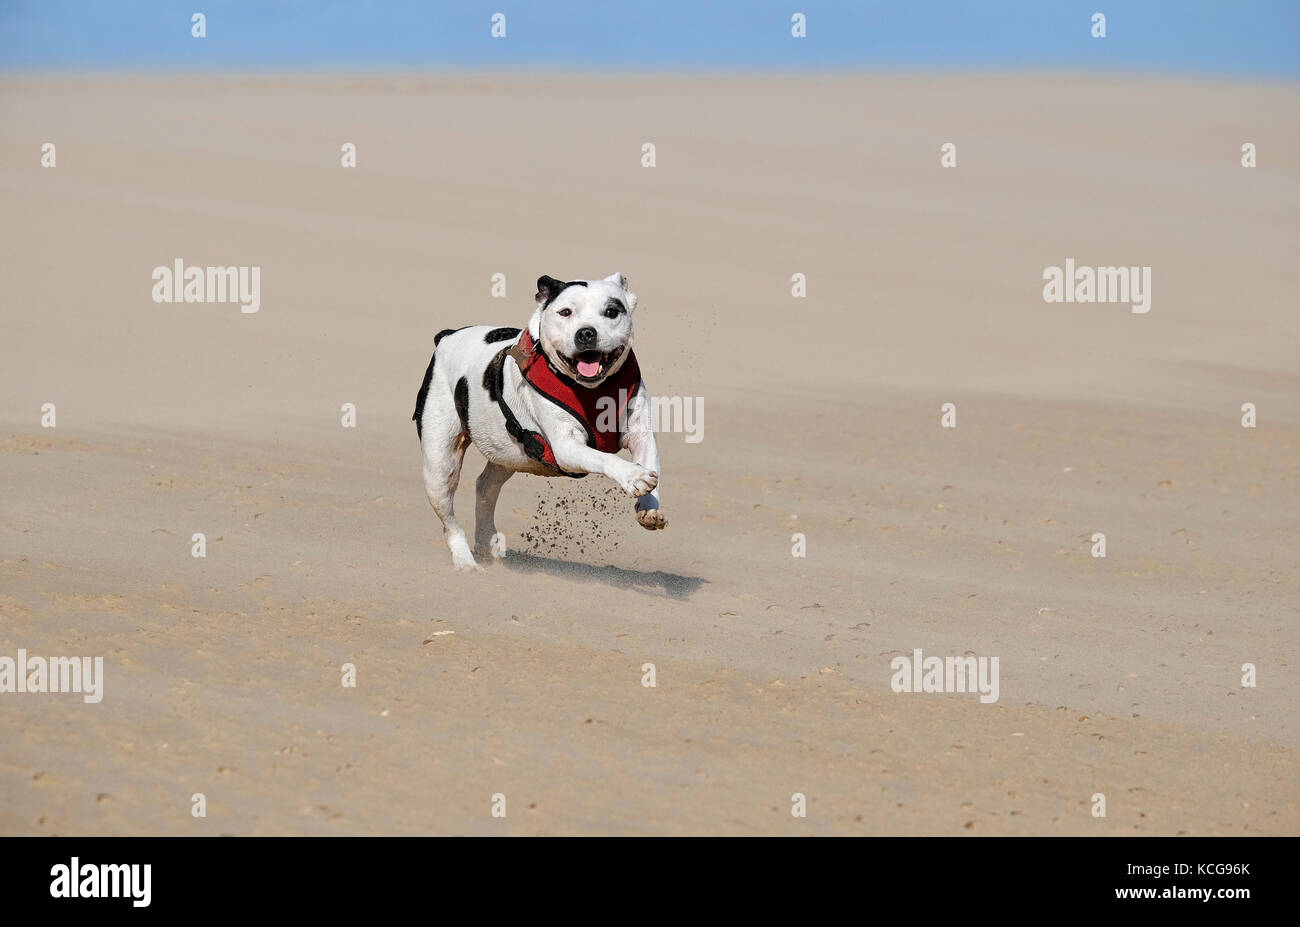 staffordshire bull terrier dog on beach - Stock Image